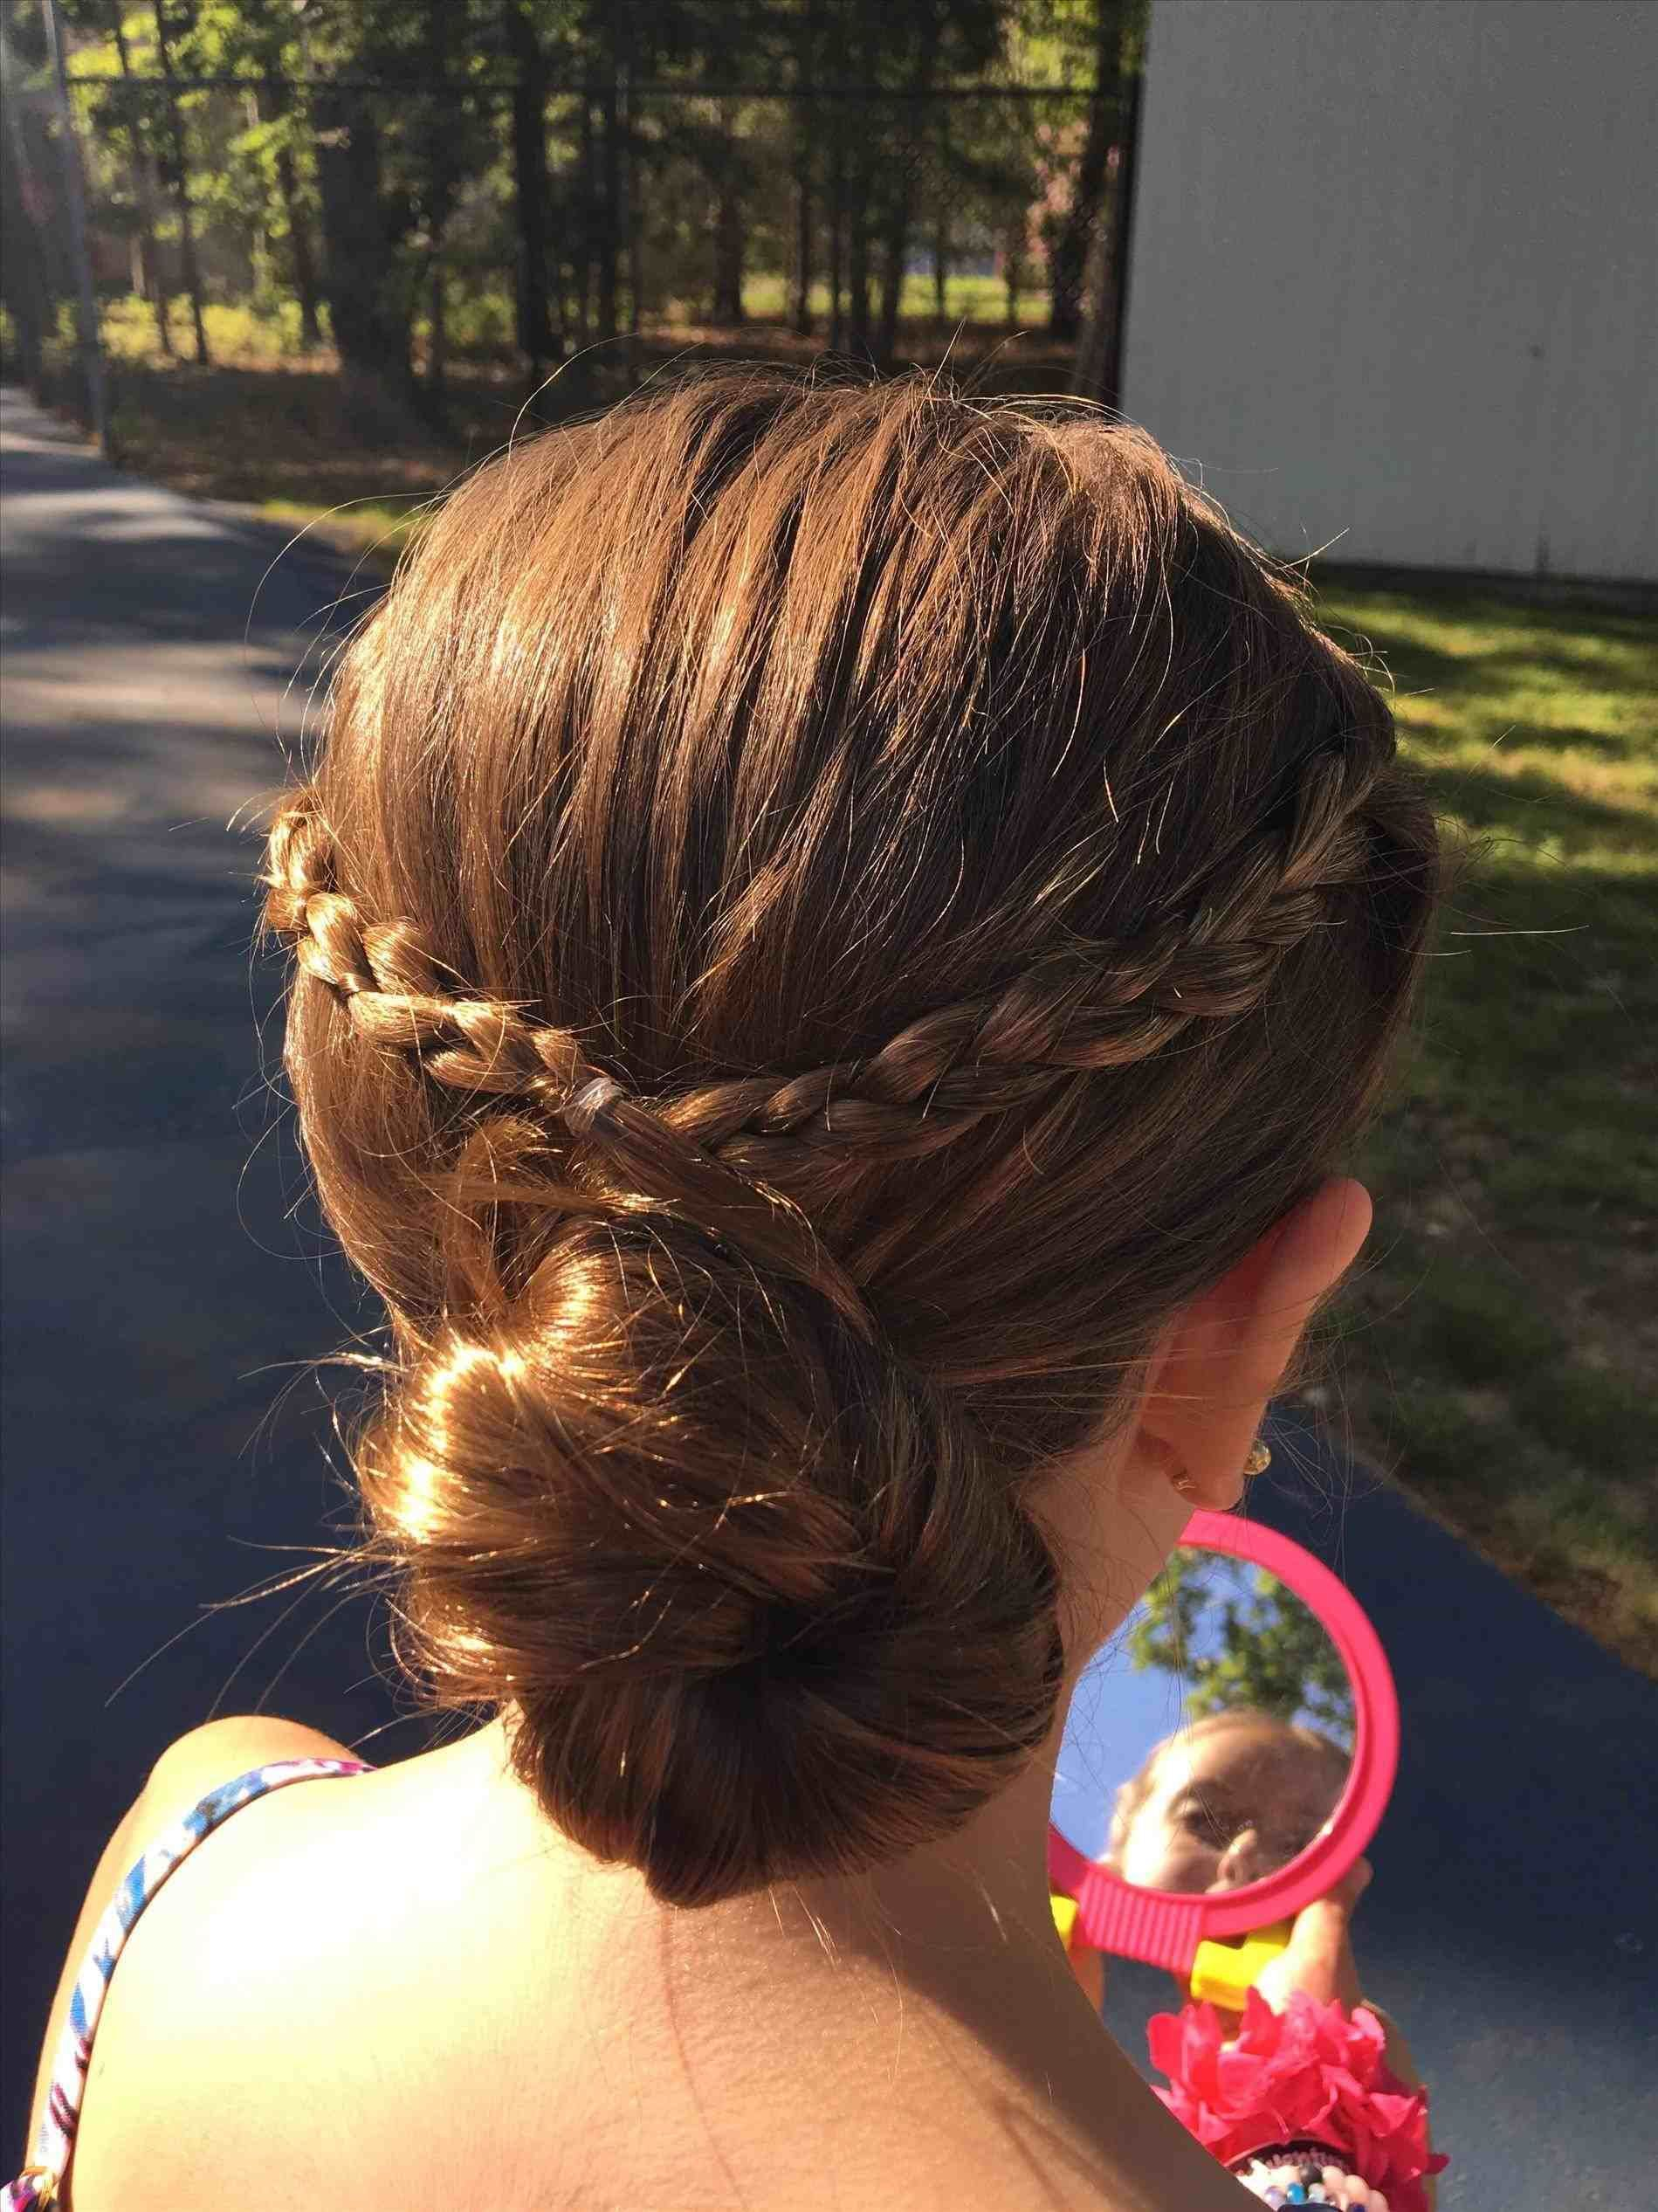 Hair plaits short pictures french hairstyle for girls on hair plaits